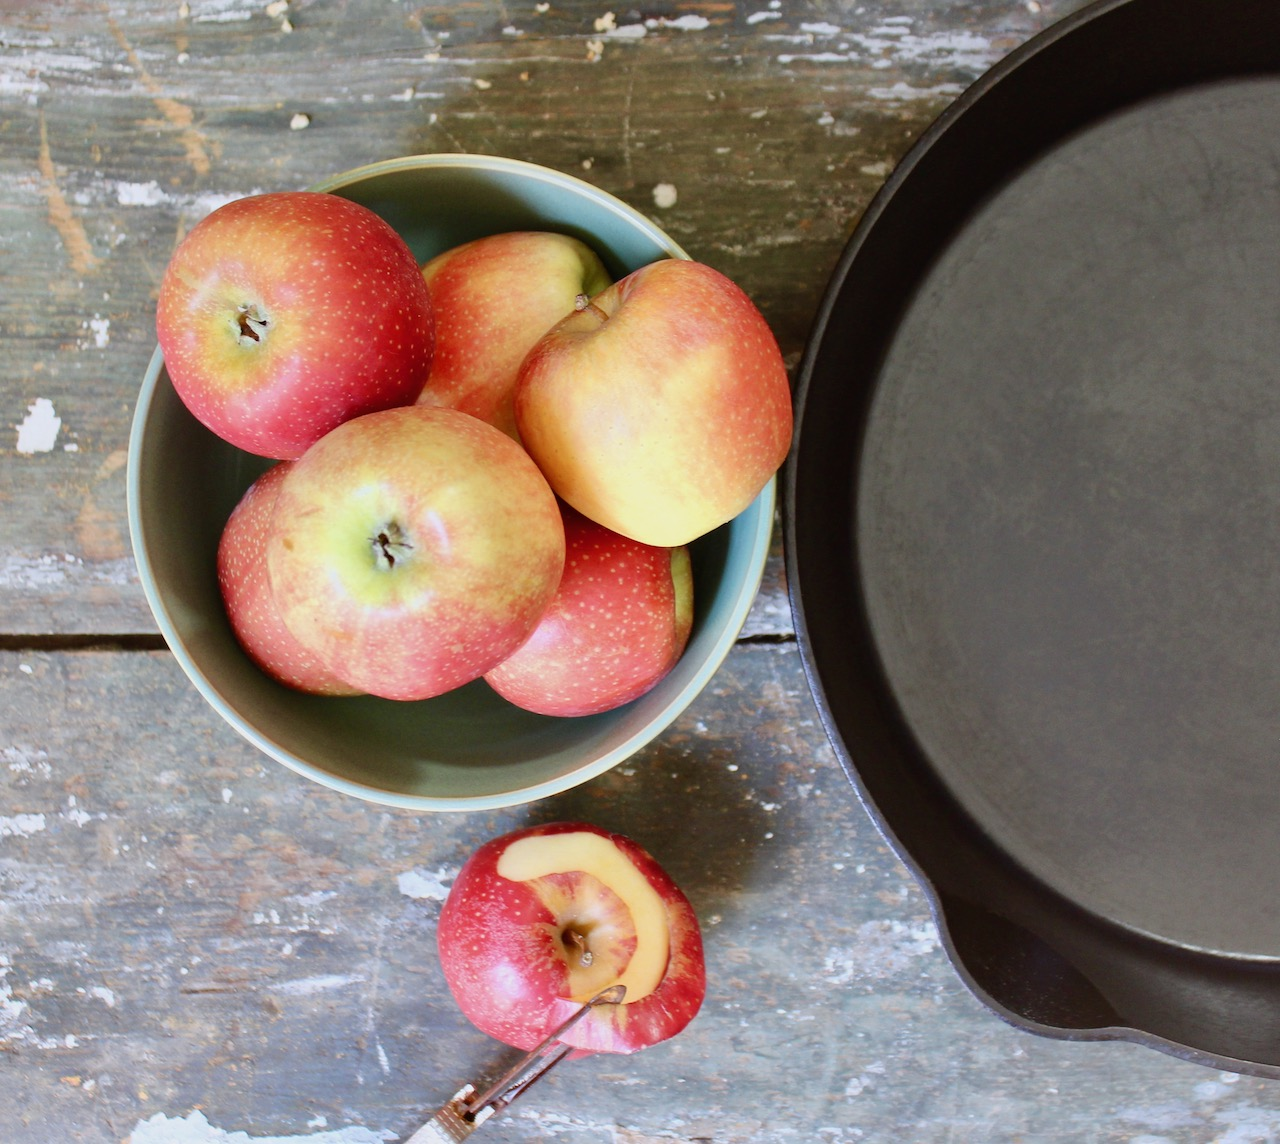 apples and skillet